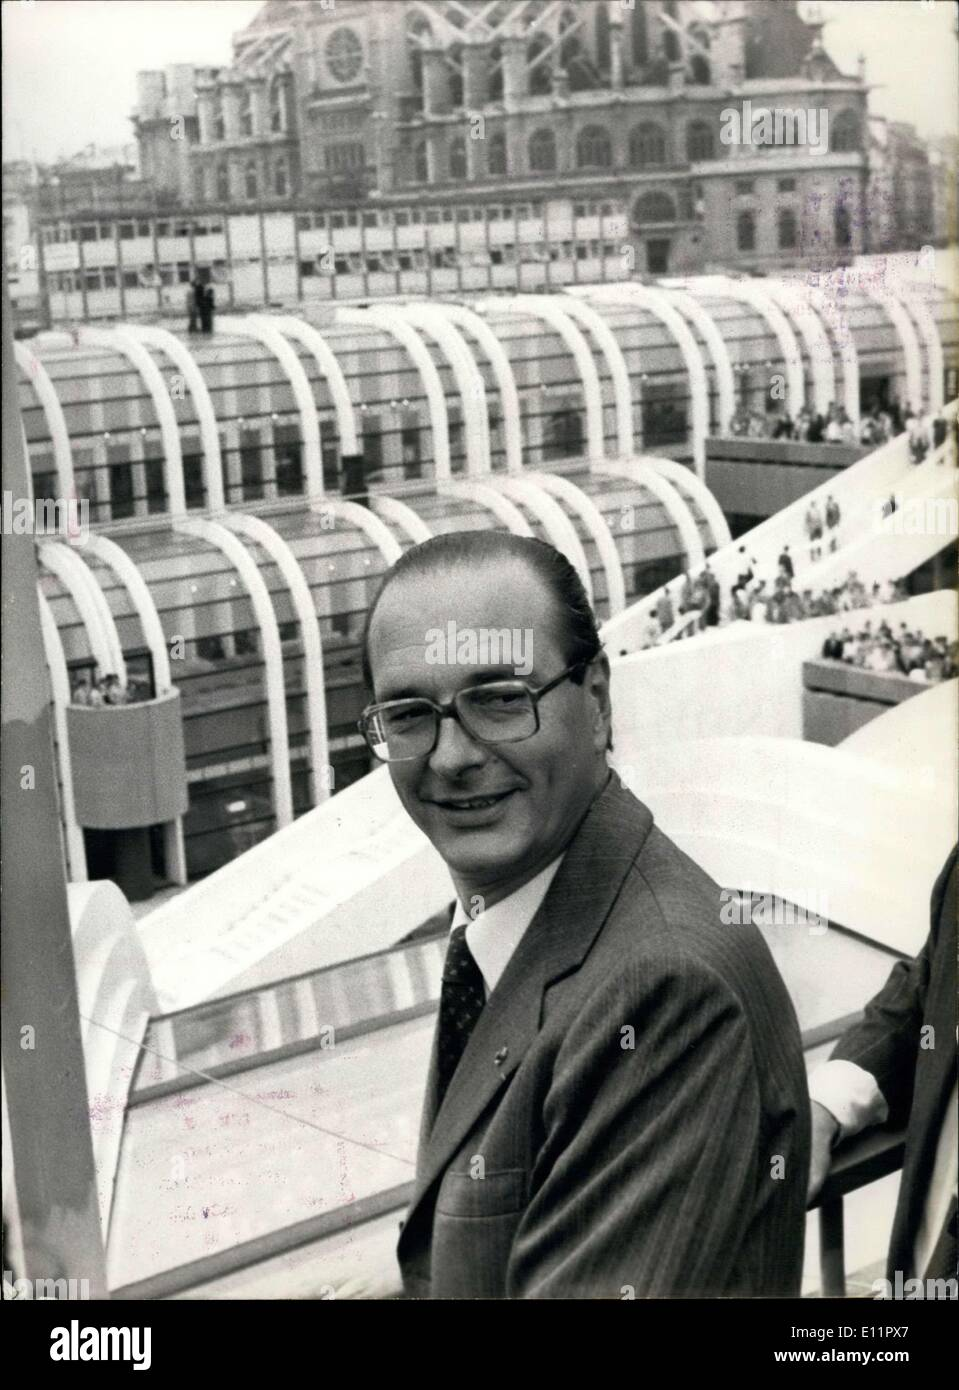 Sep. 04, 1979 - Mayor of Paris, Jacques Chirac, officially inaugurated the Halles Forum at the heart of the capital. - Stock Image